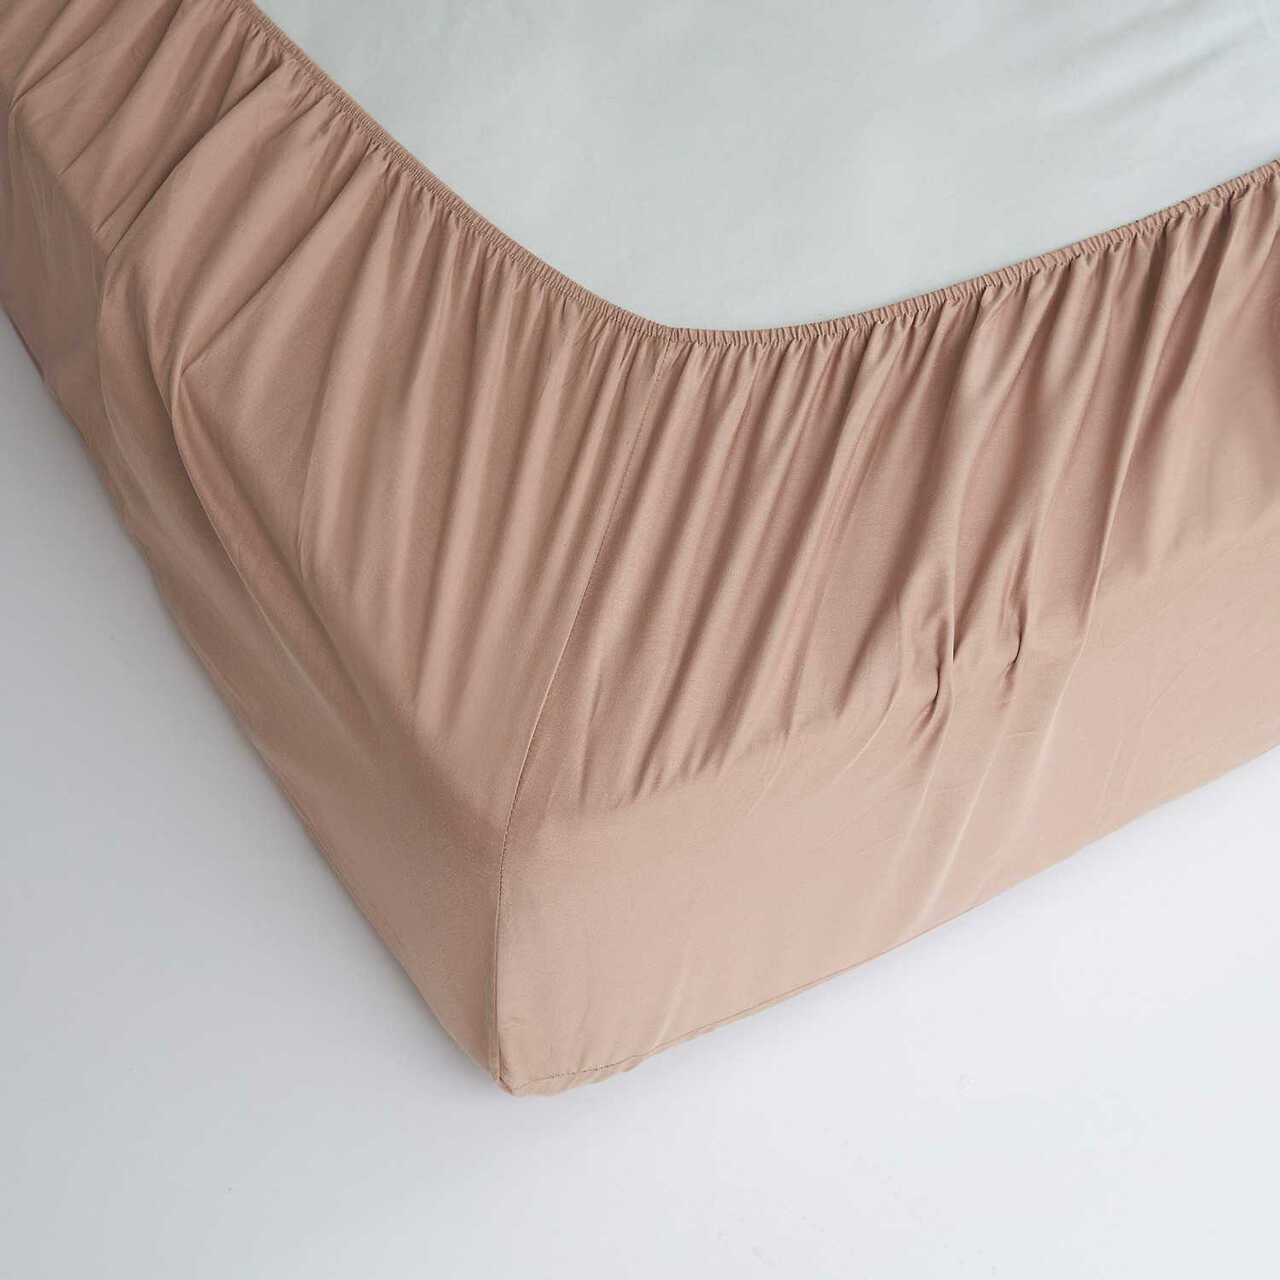 Fitted Sheet Bedding DM801K Wholesale-Dropship